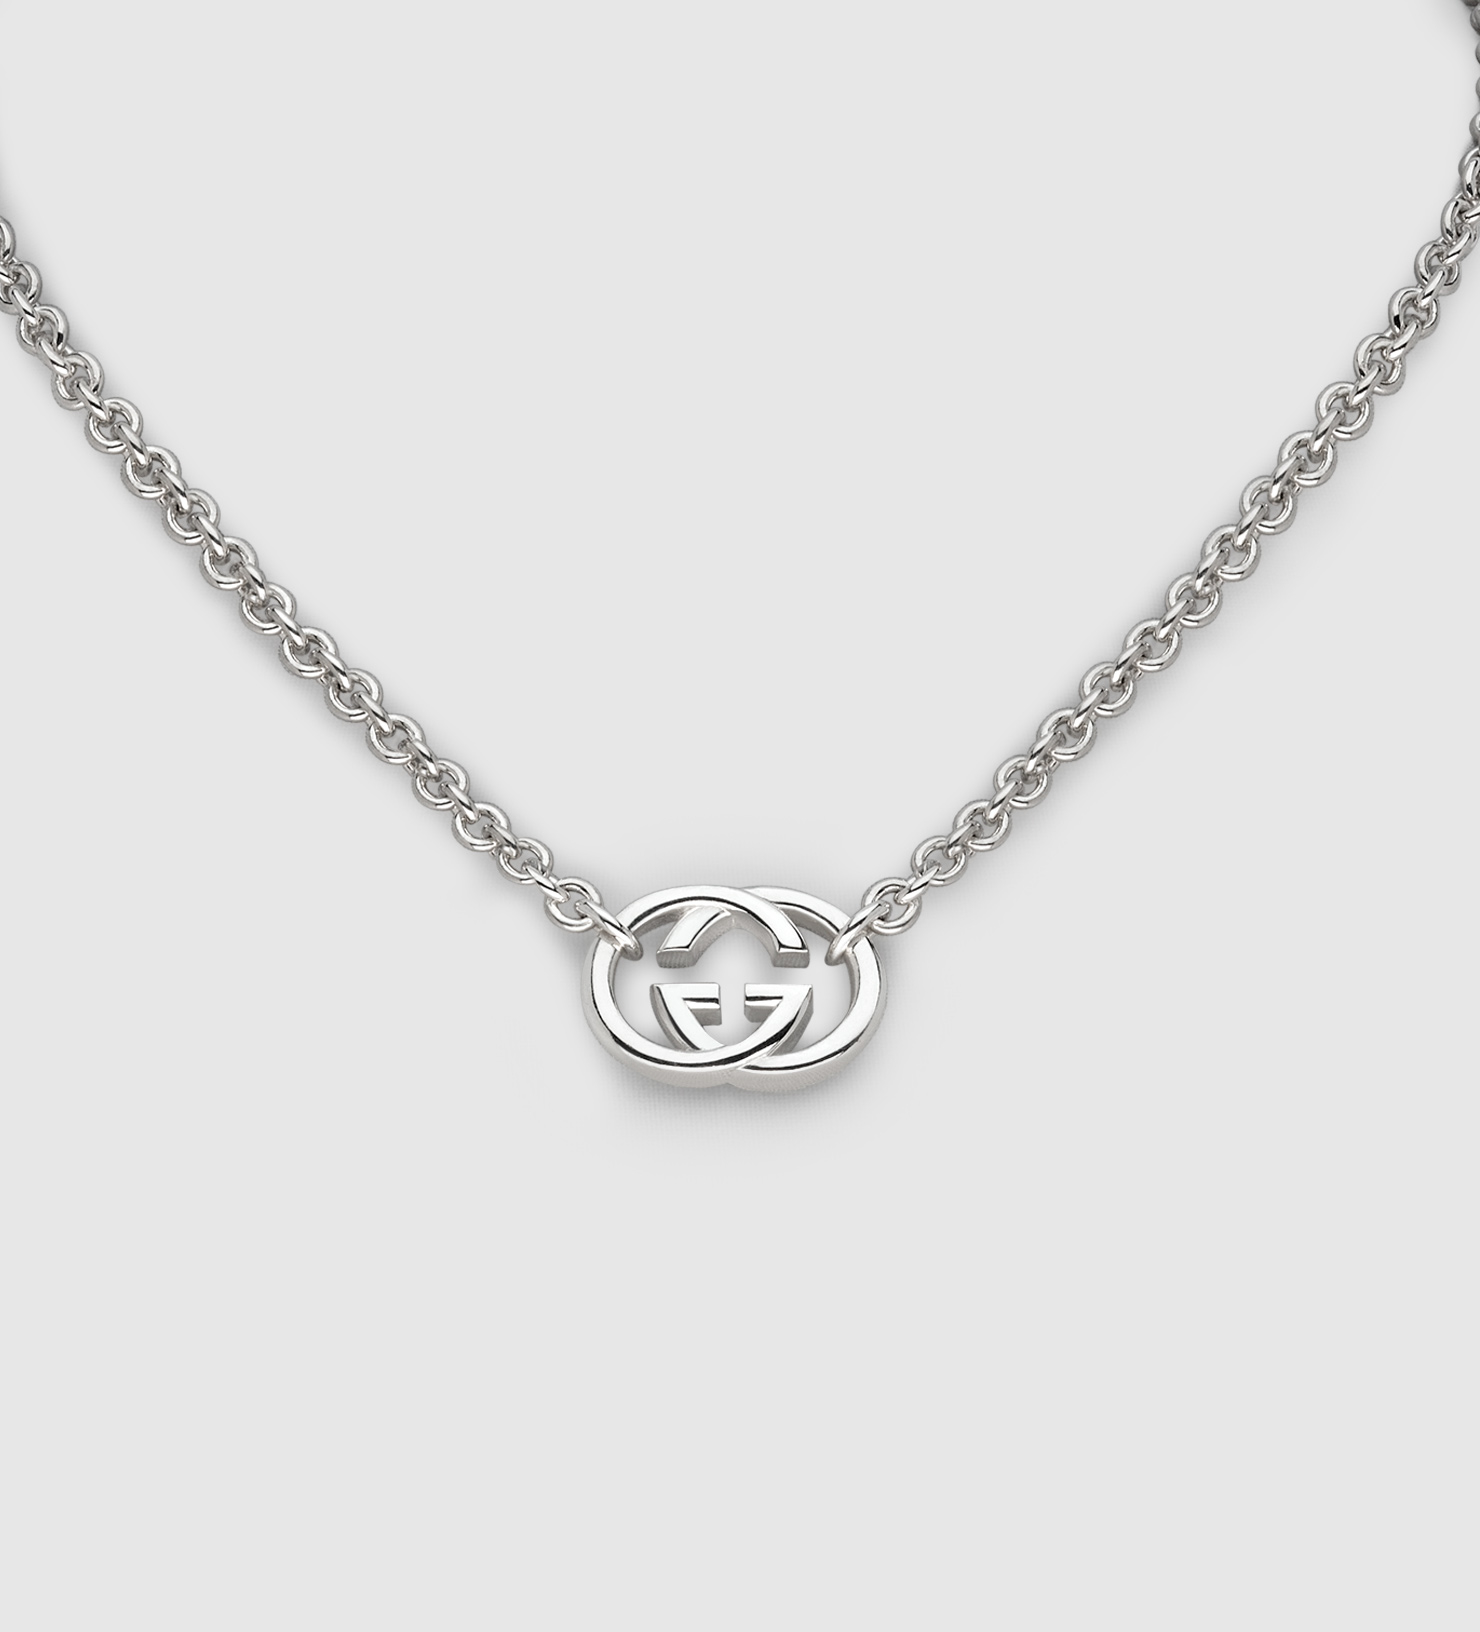 Gucci Necklace With Interlocking G Motif Pendant In Silver